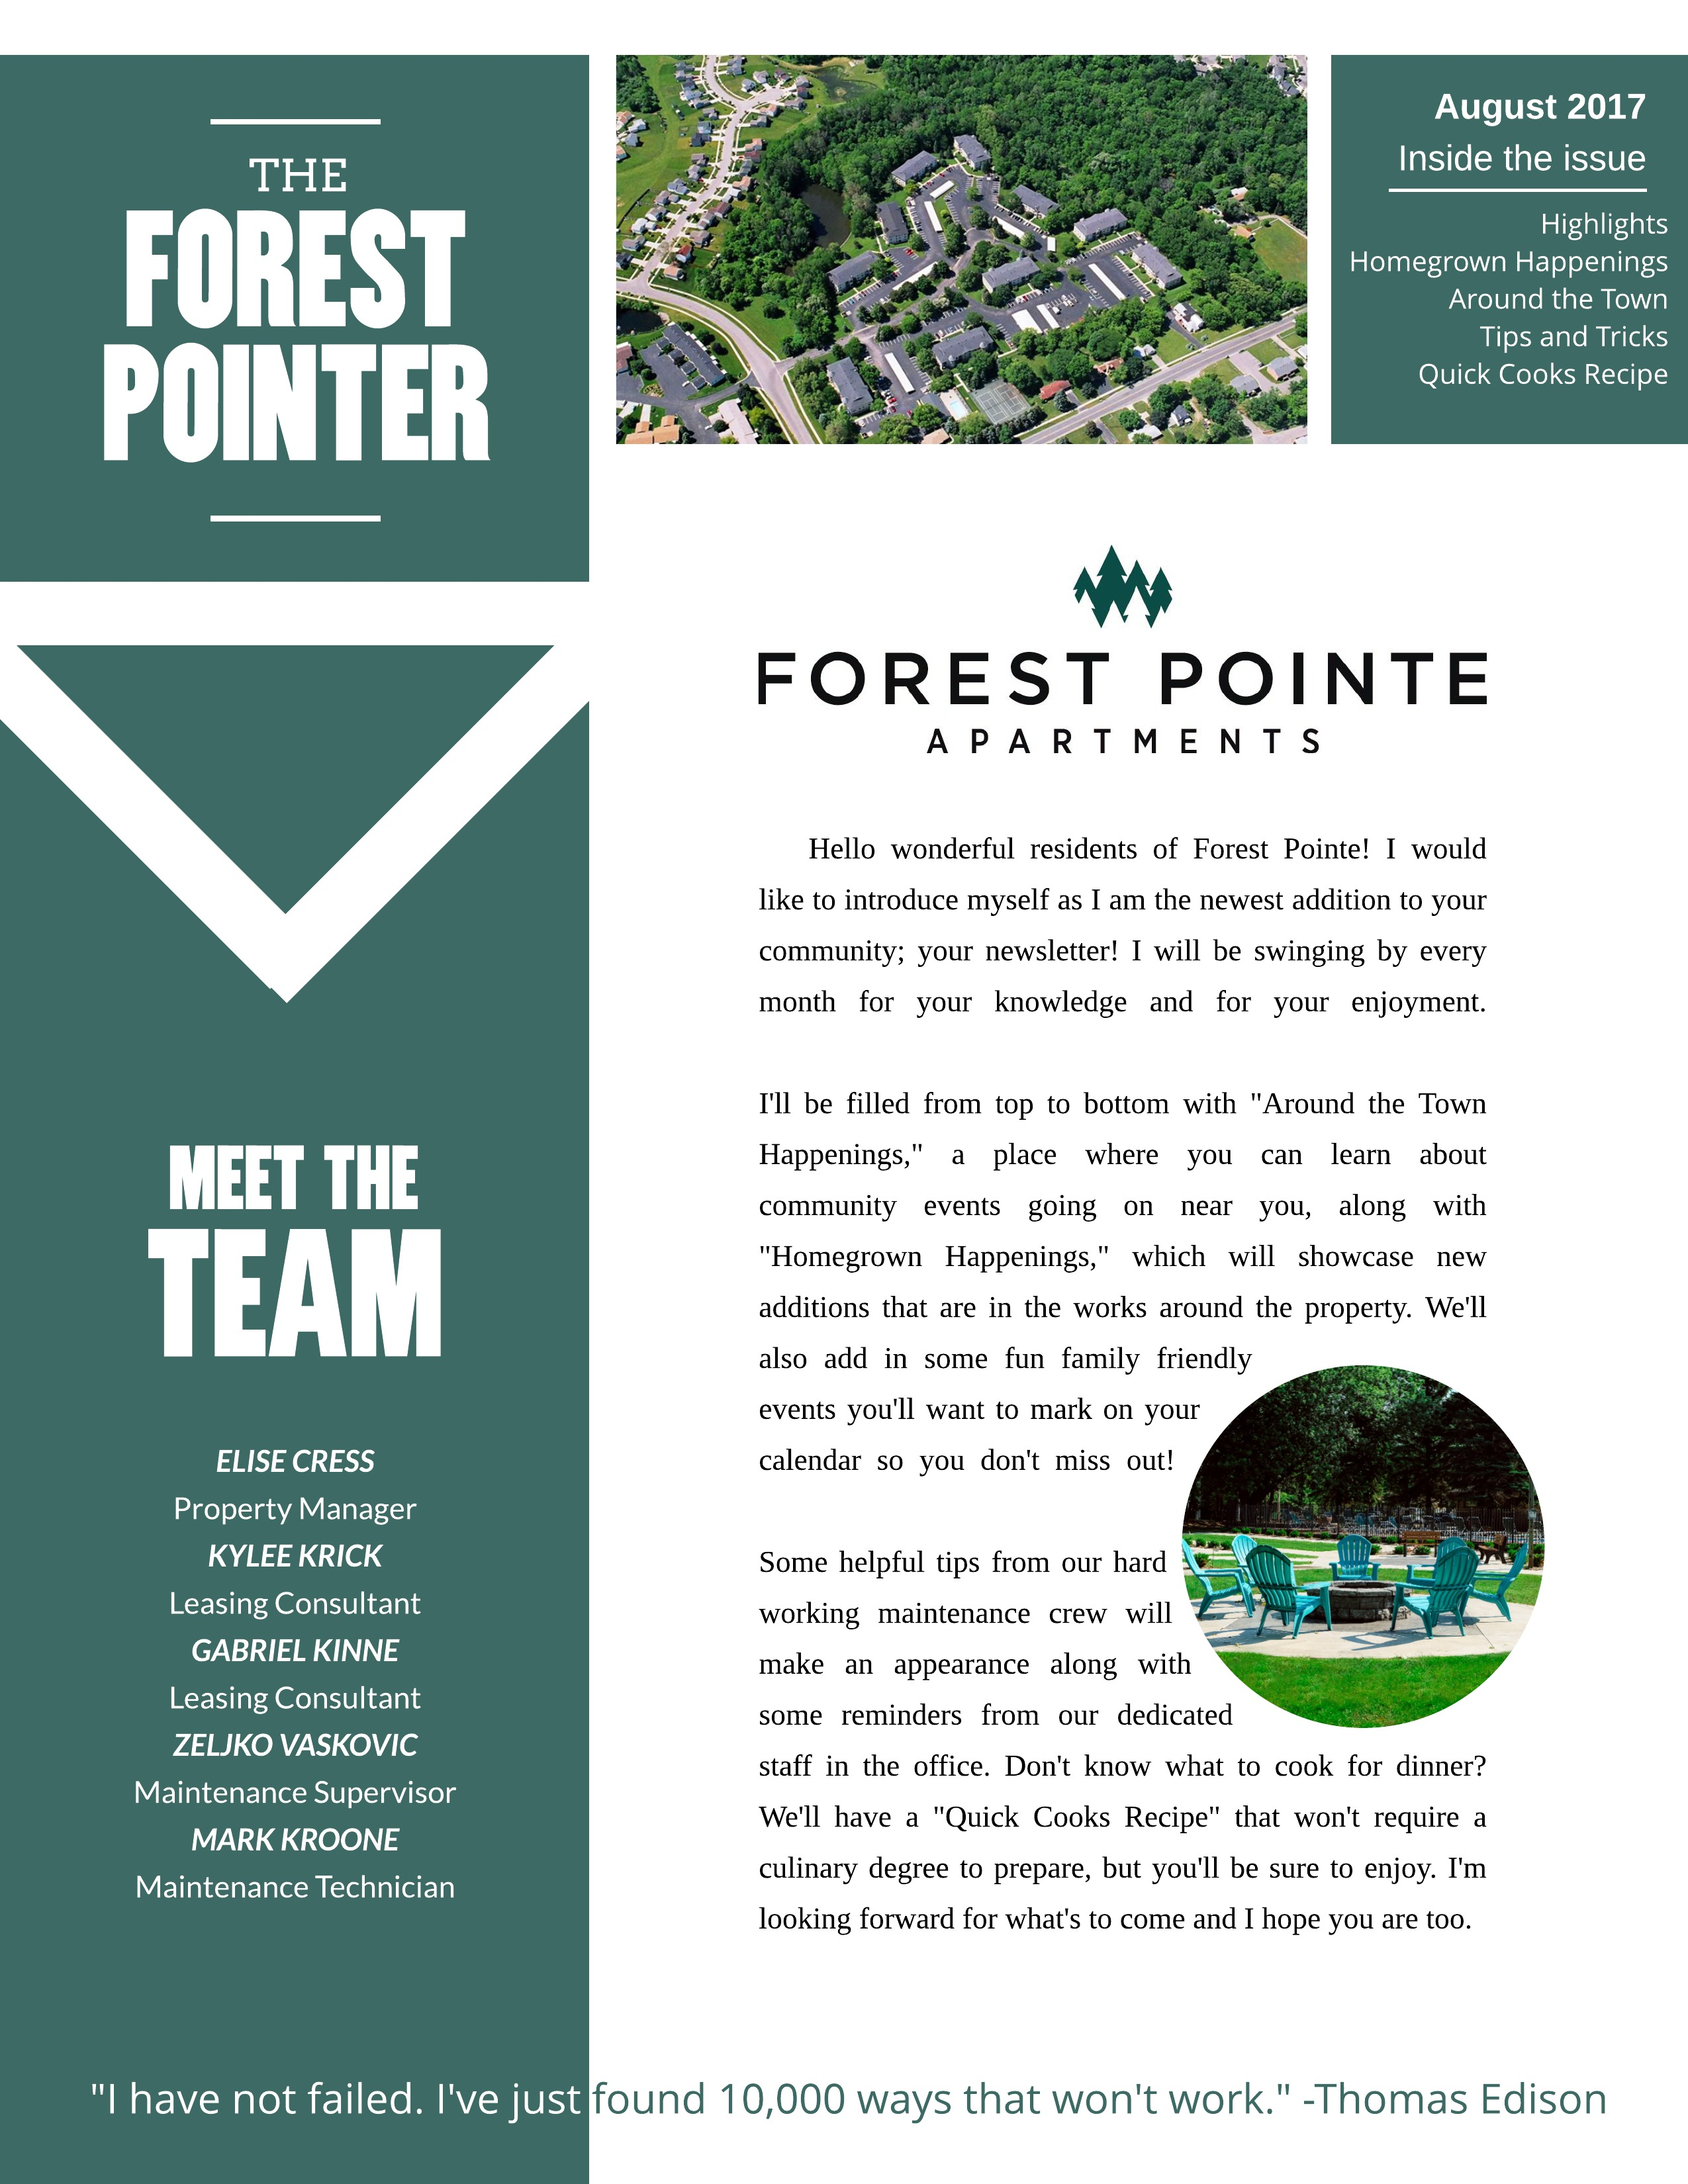 August 2017 Newsletter: The Forest Pointer